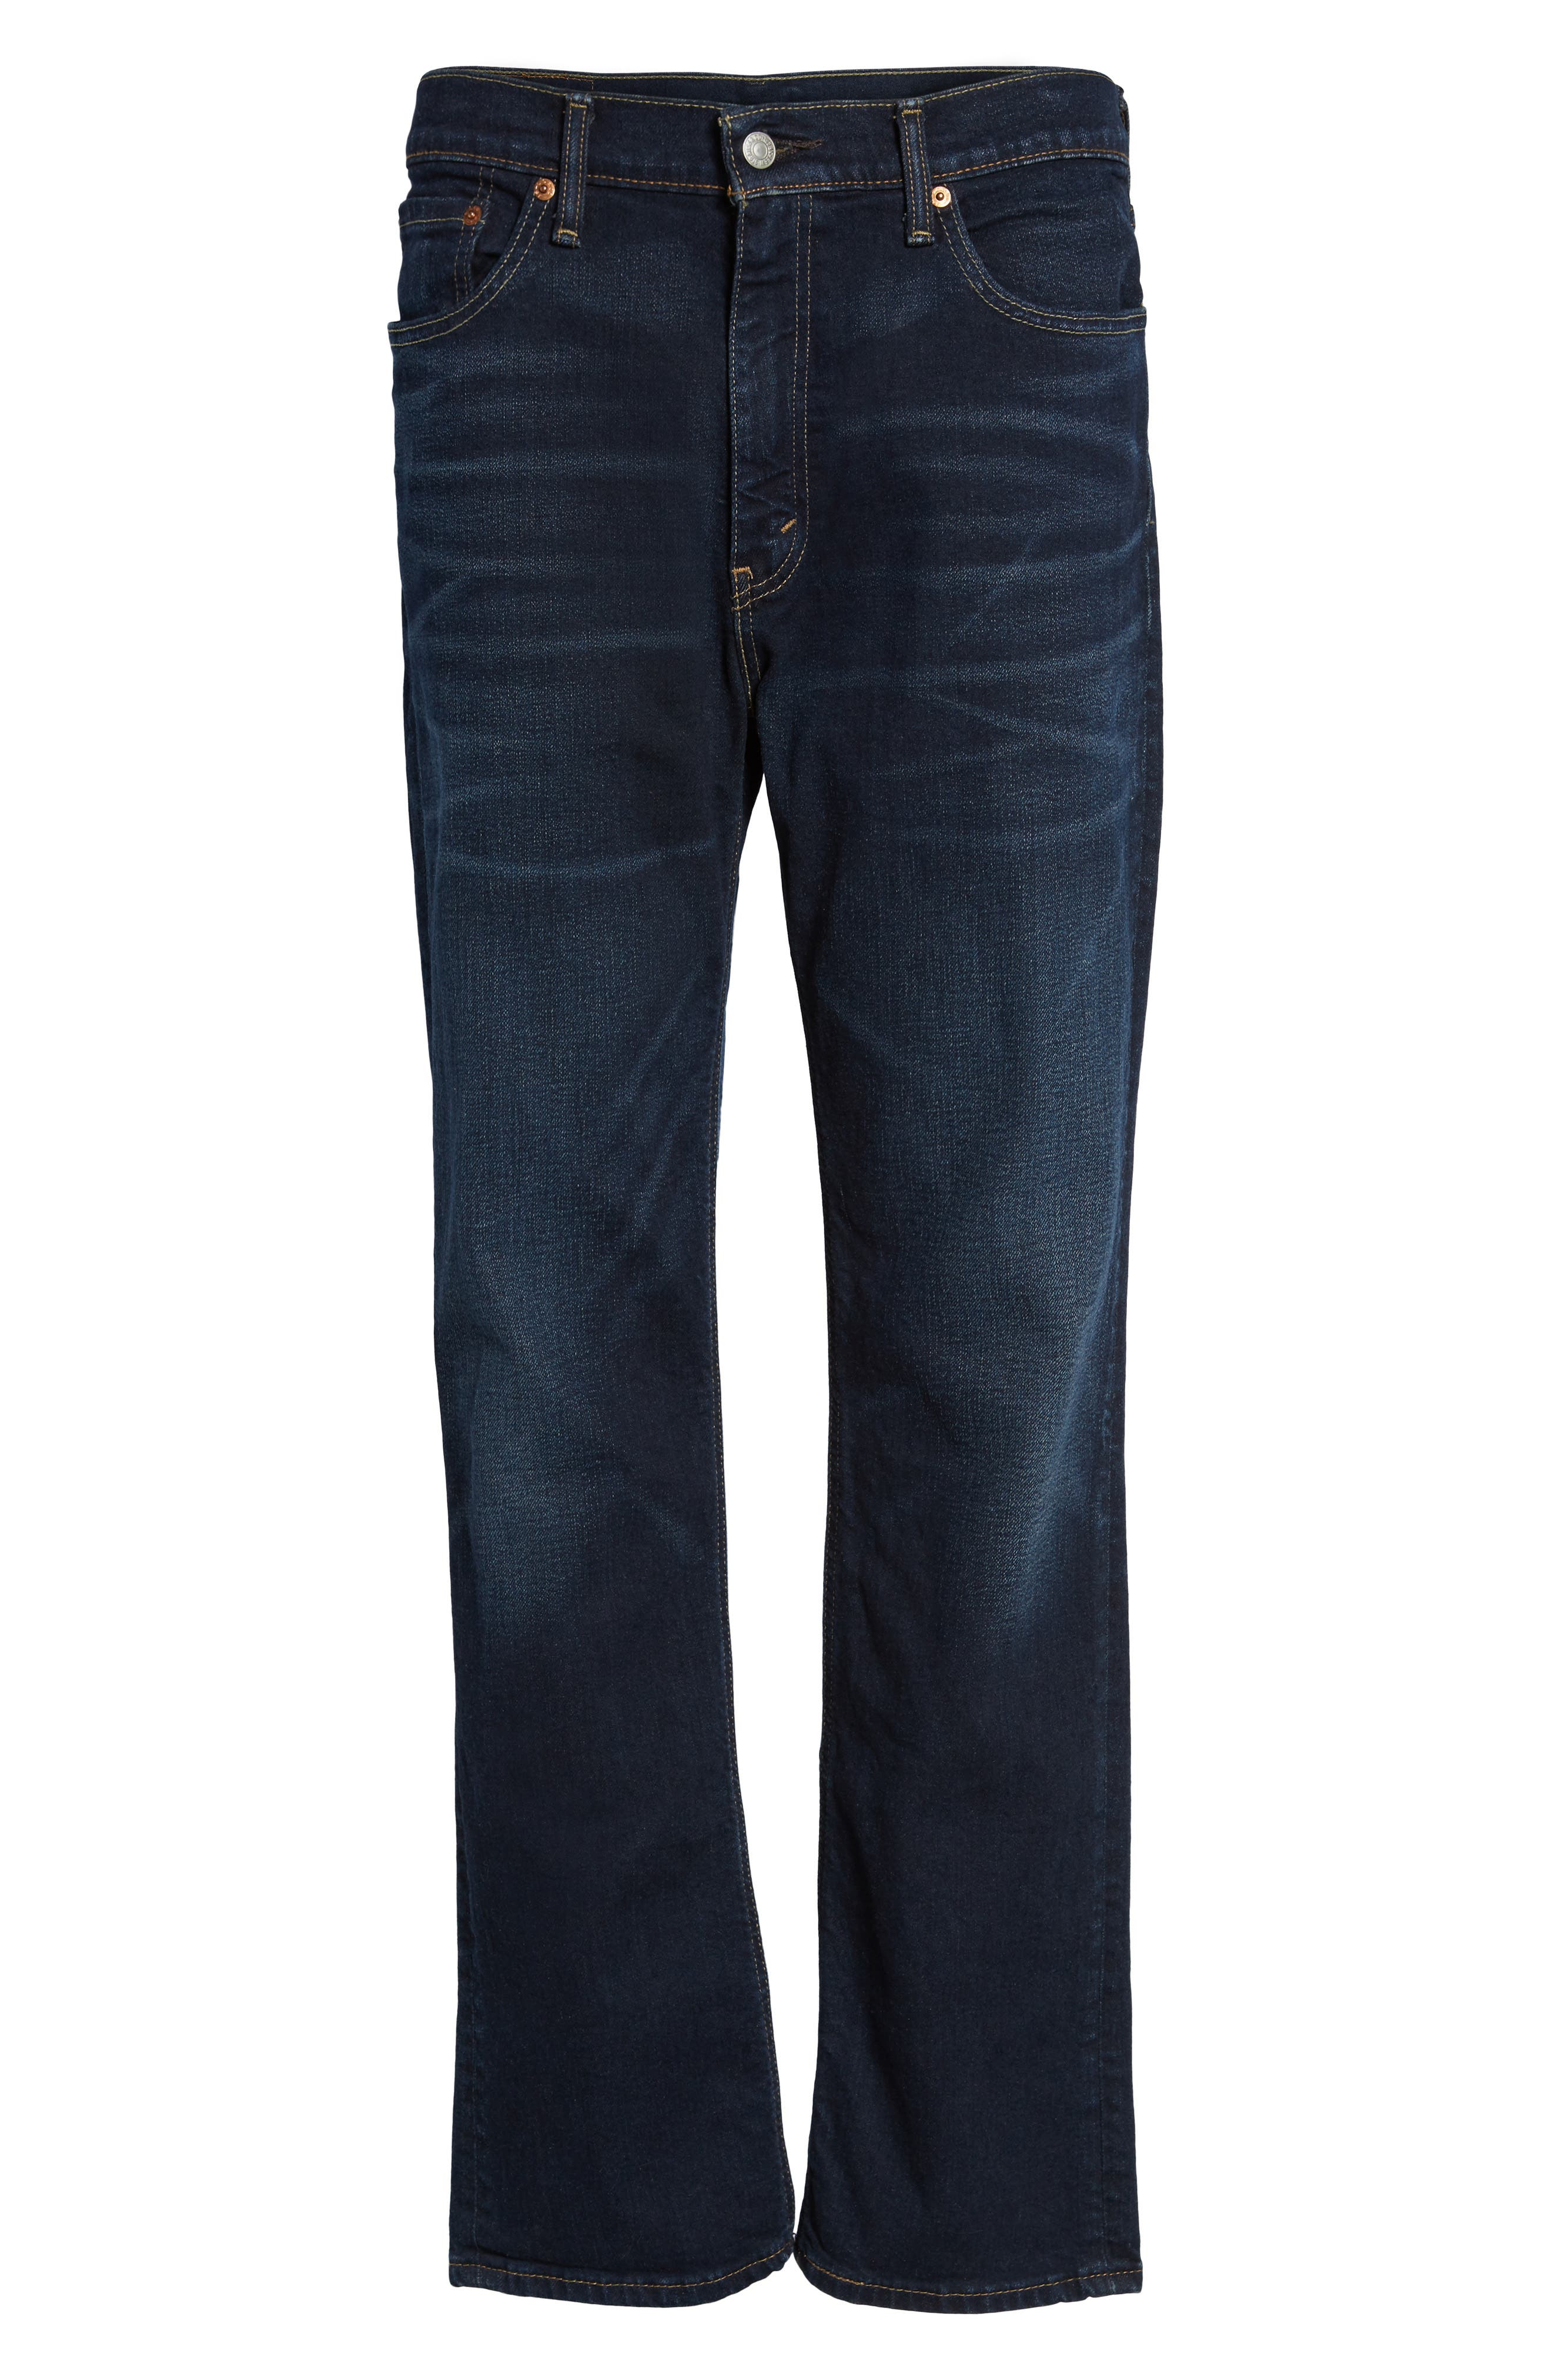 541<sup>™</sup> Athletic Straight Leg Jeans,                             Alternate thumbnail 6, color,                             425